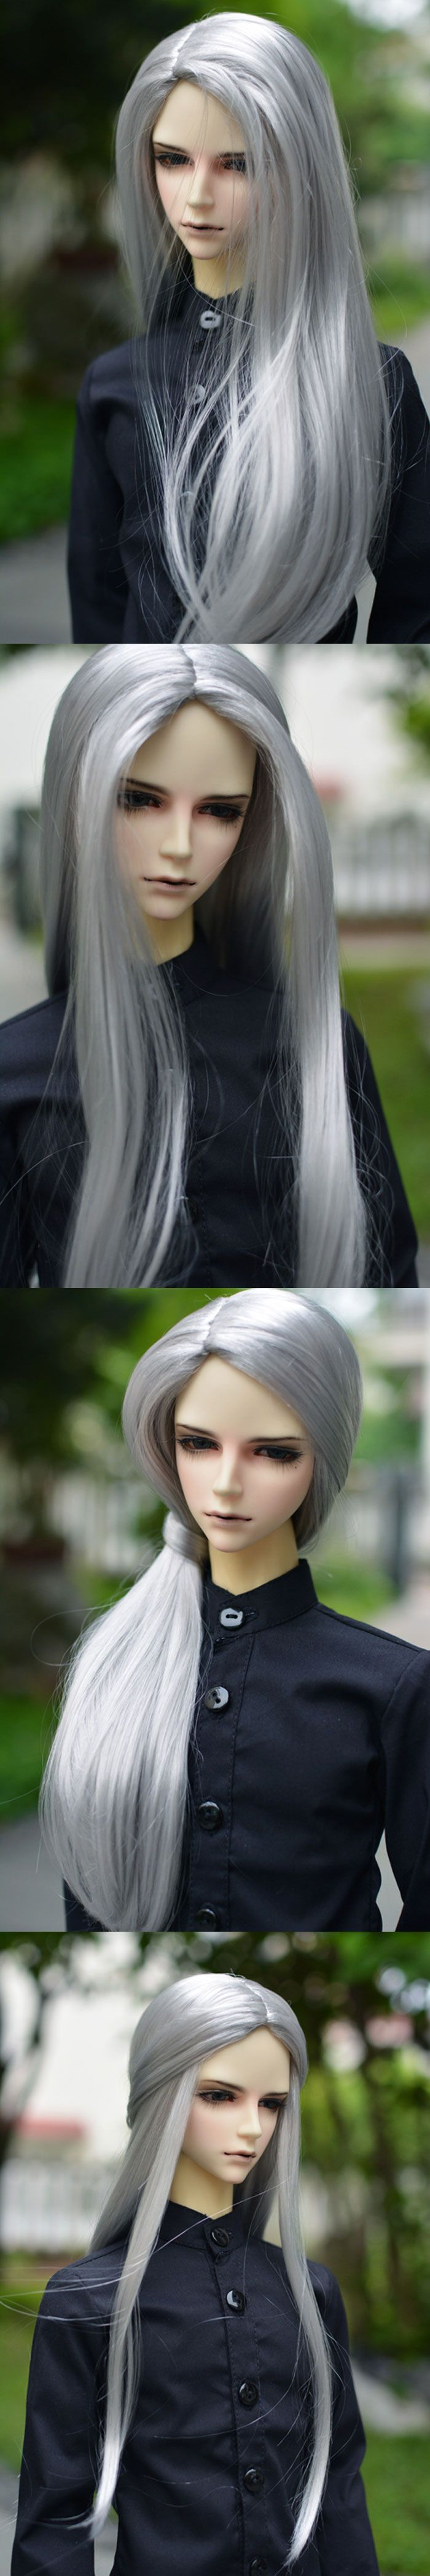 http://legenddoll.net/goods-7462.html